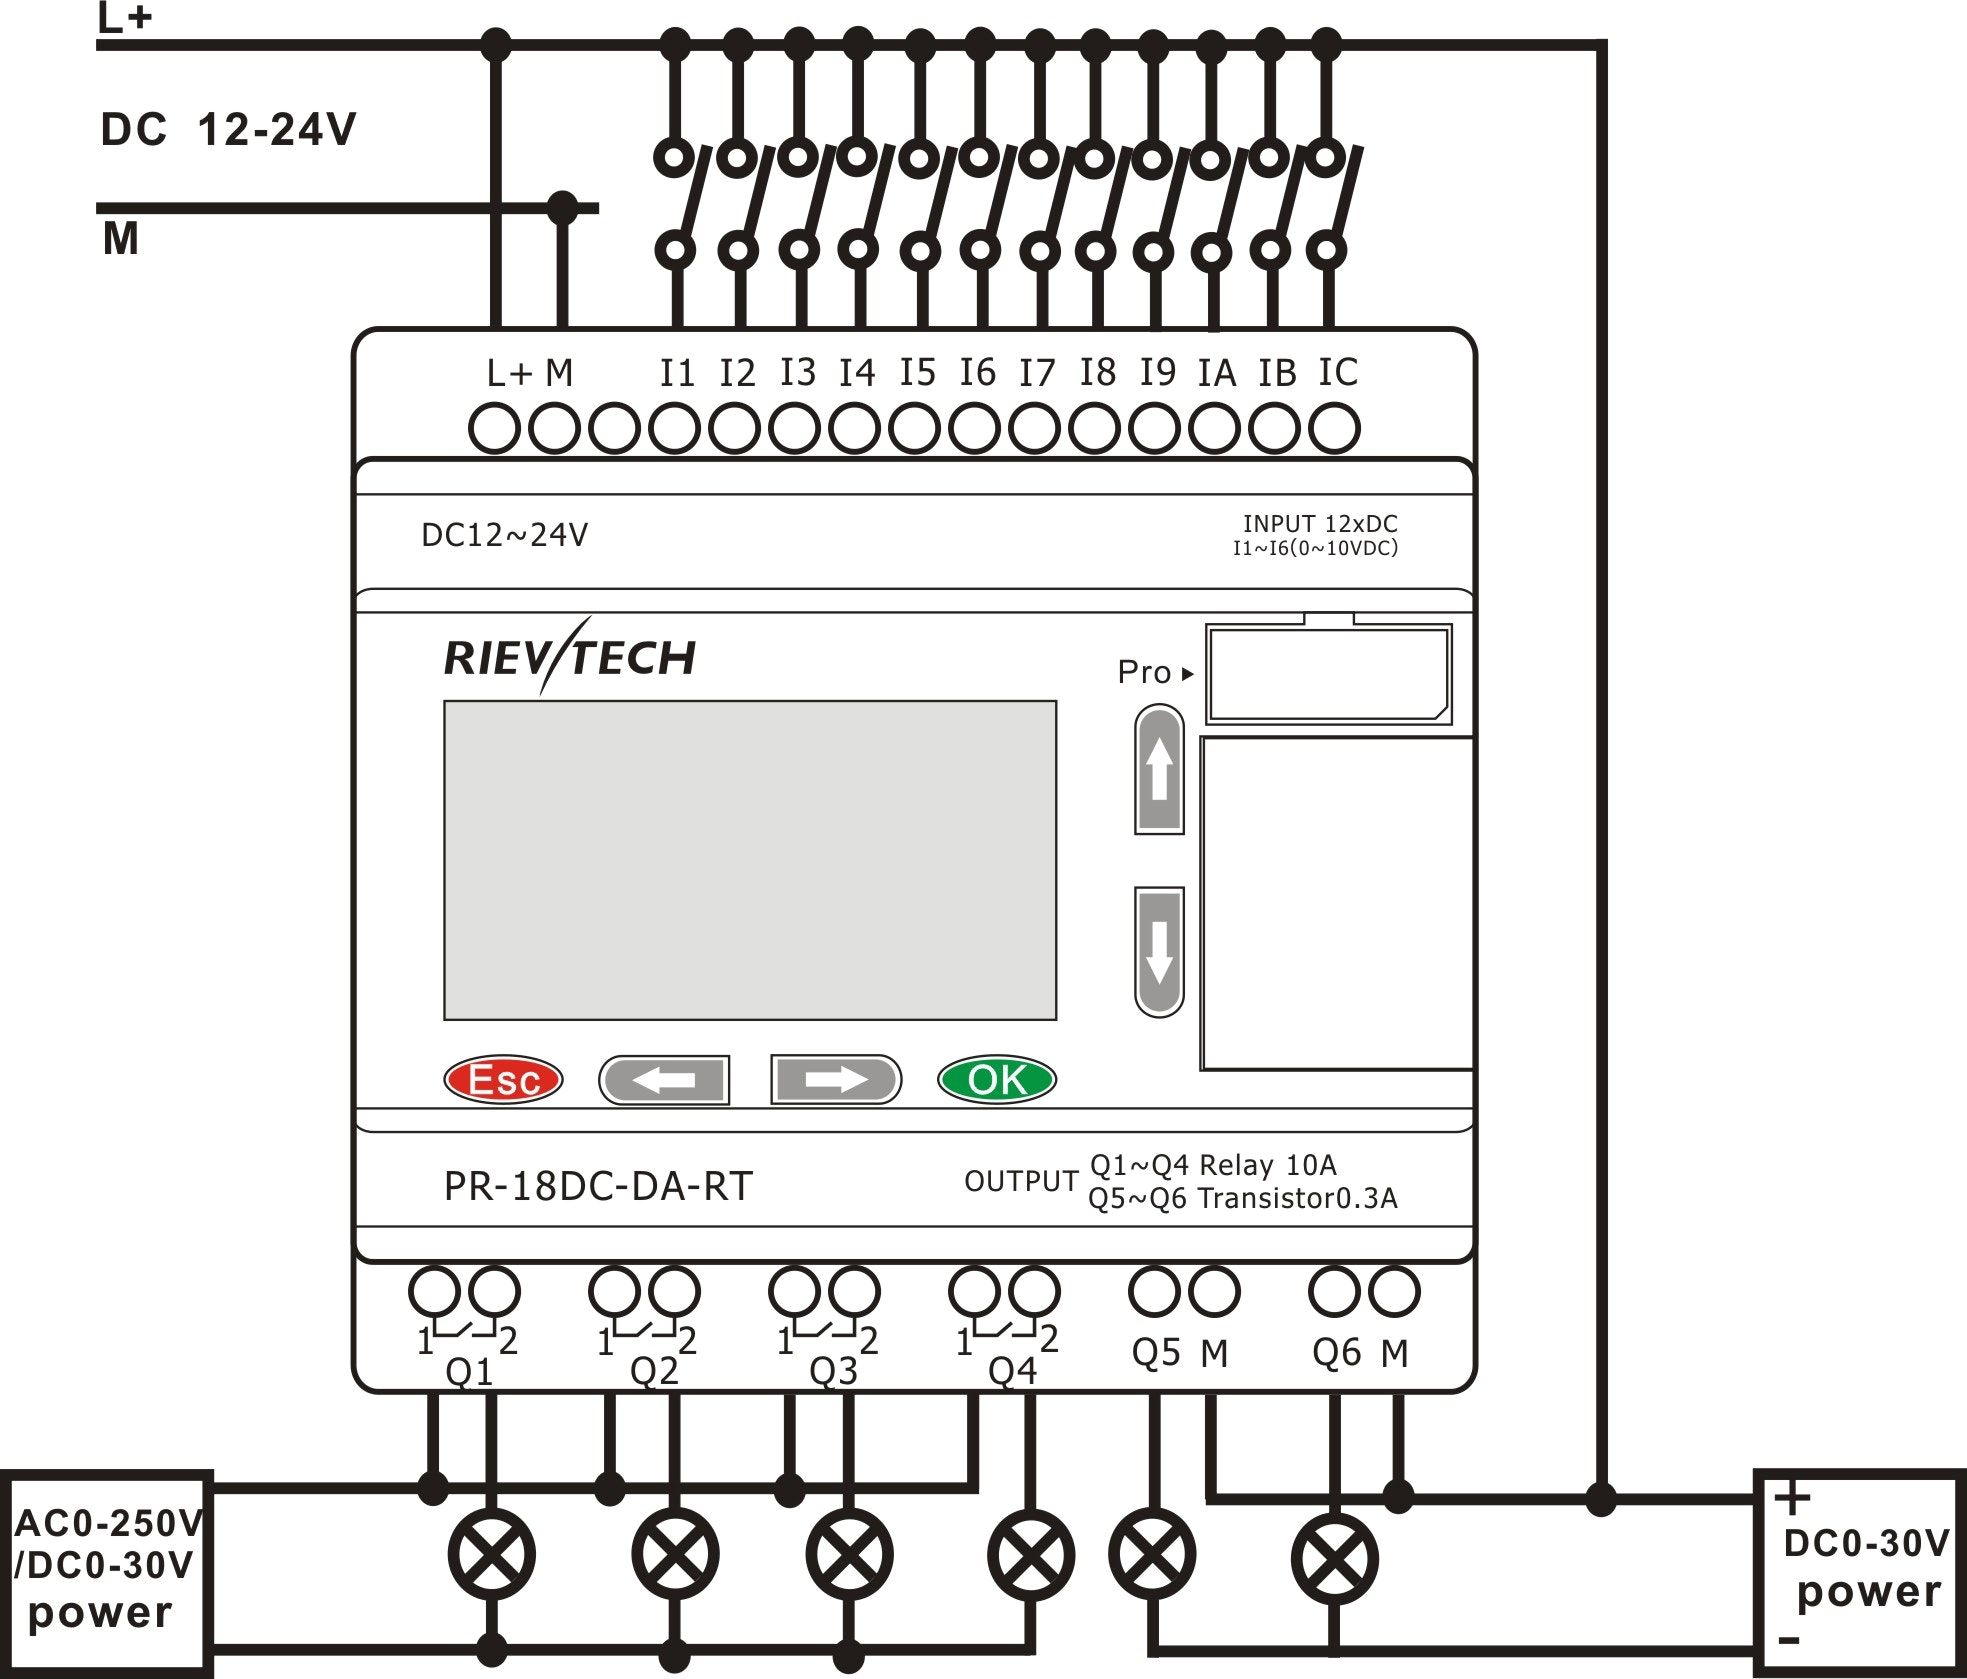 Mitsubishi Plc Wiring Diagram 18dc And Experimental Shot With New In 2019